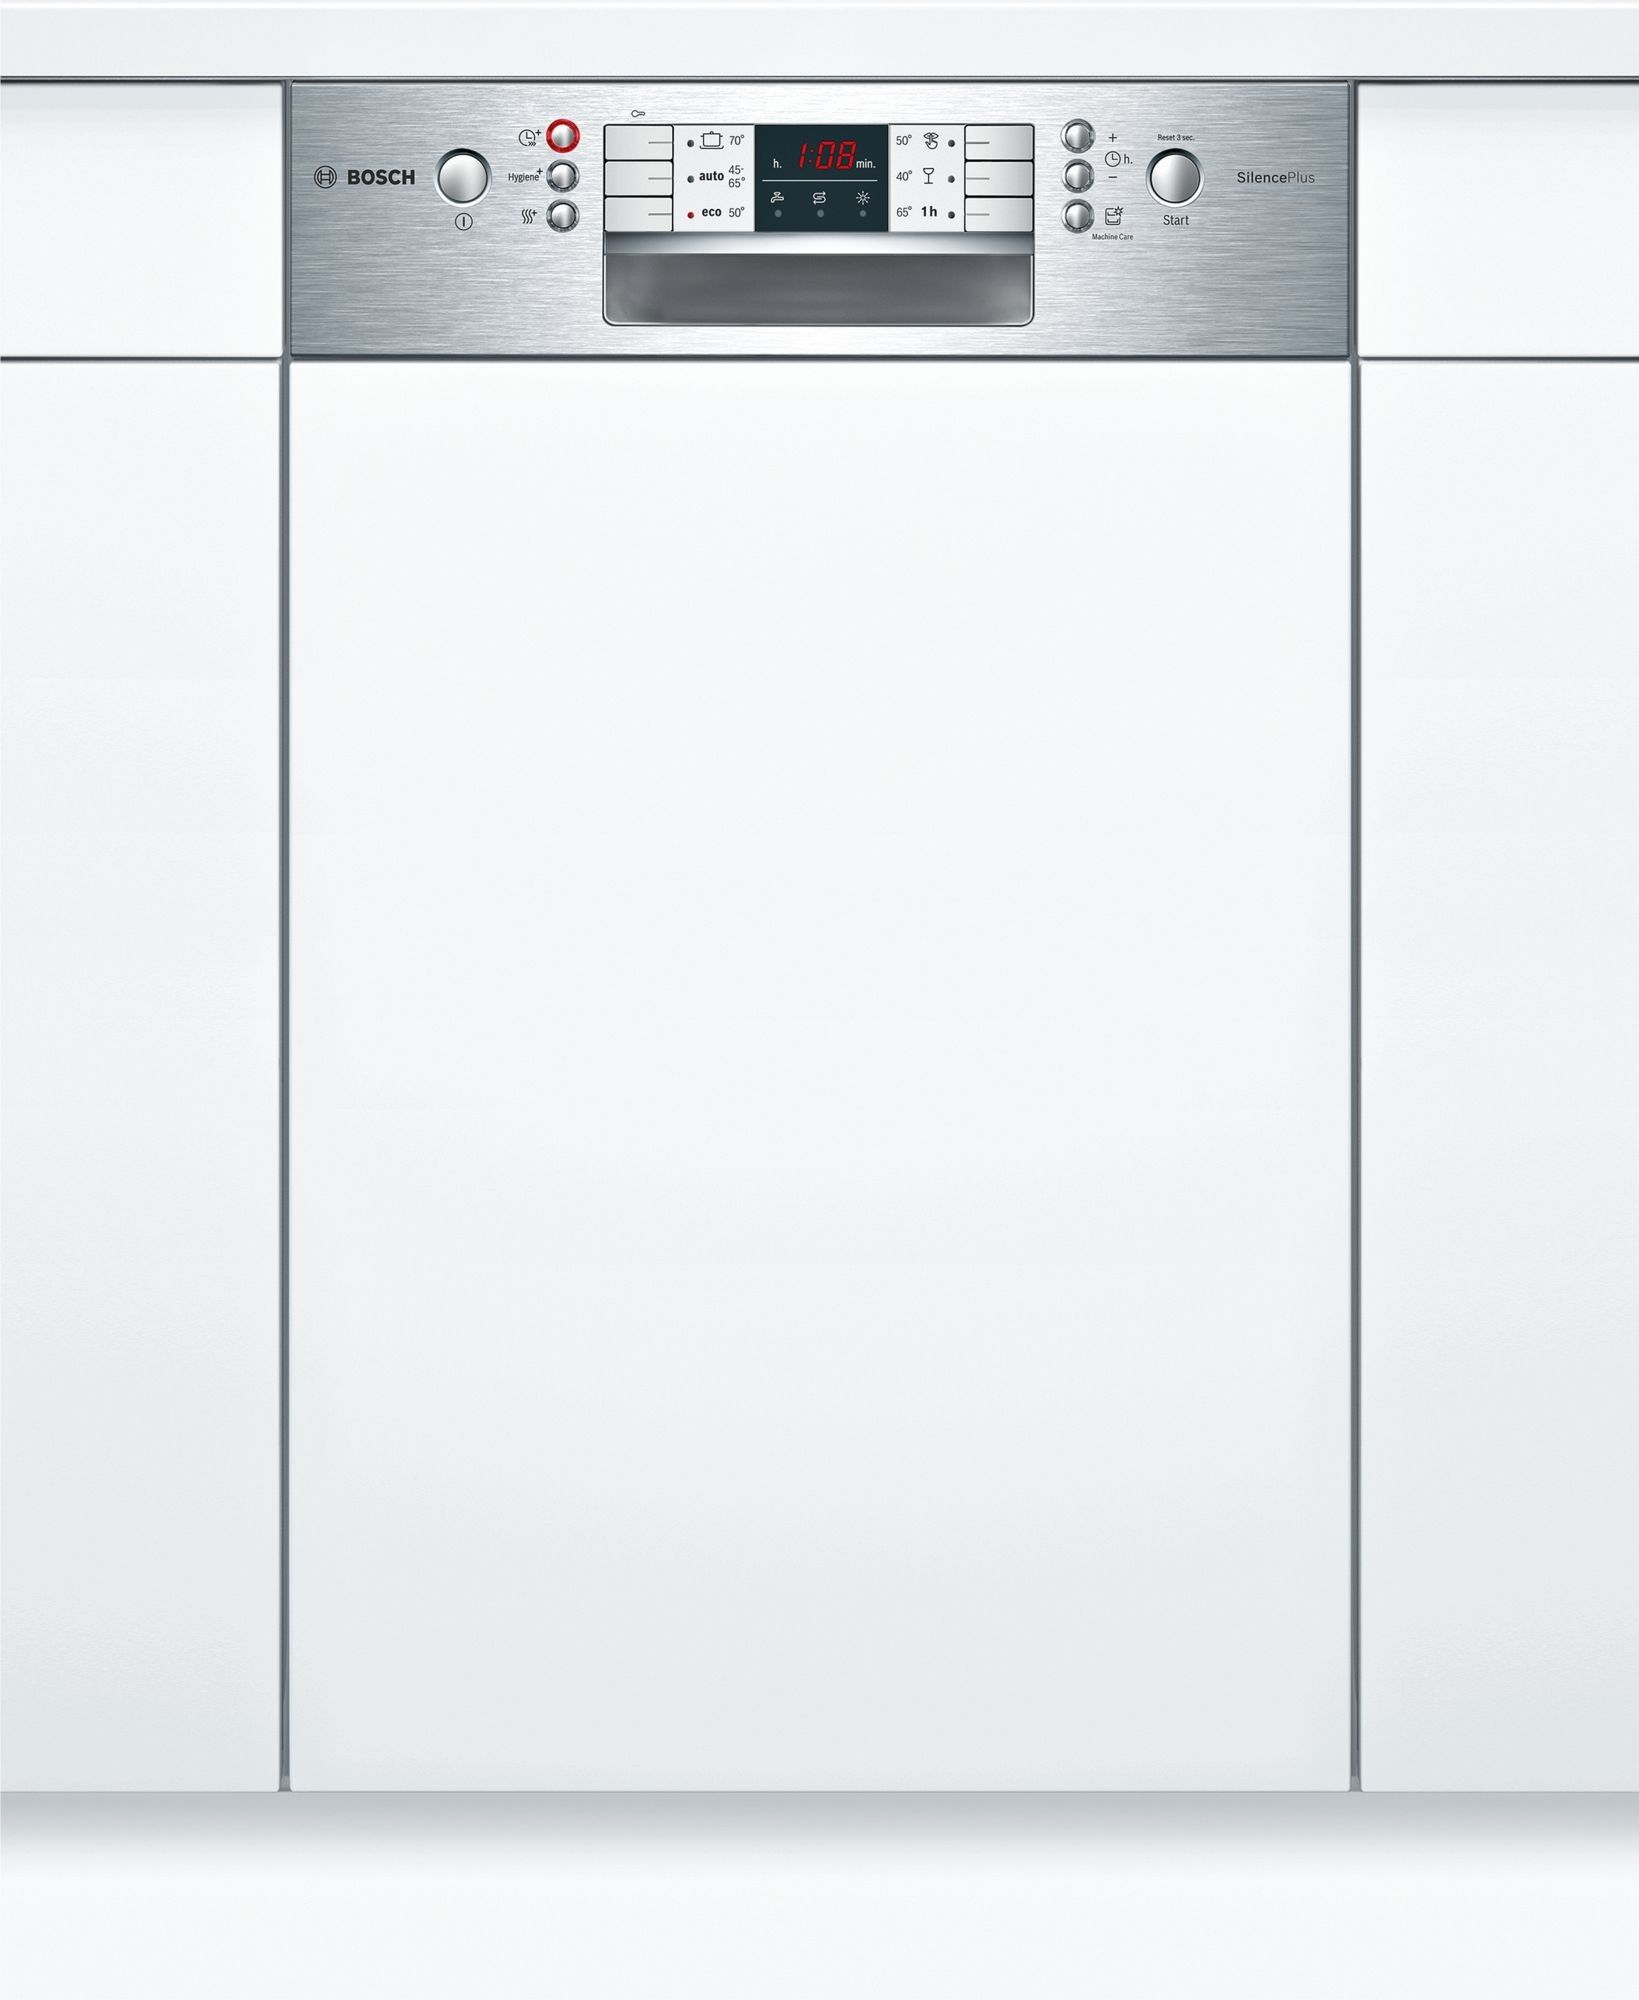 Buy Bosch Serie 4 SPI46IS05E dishwasher Fully builtin 9